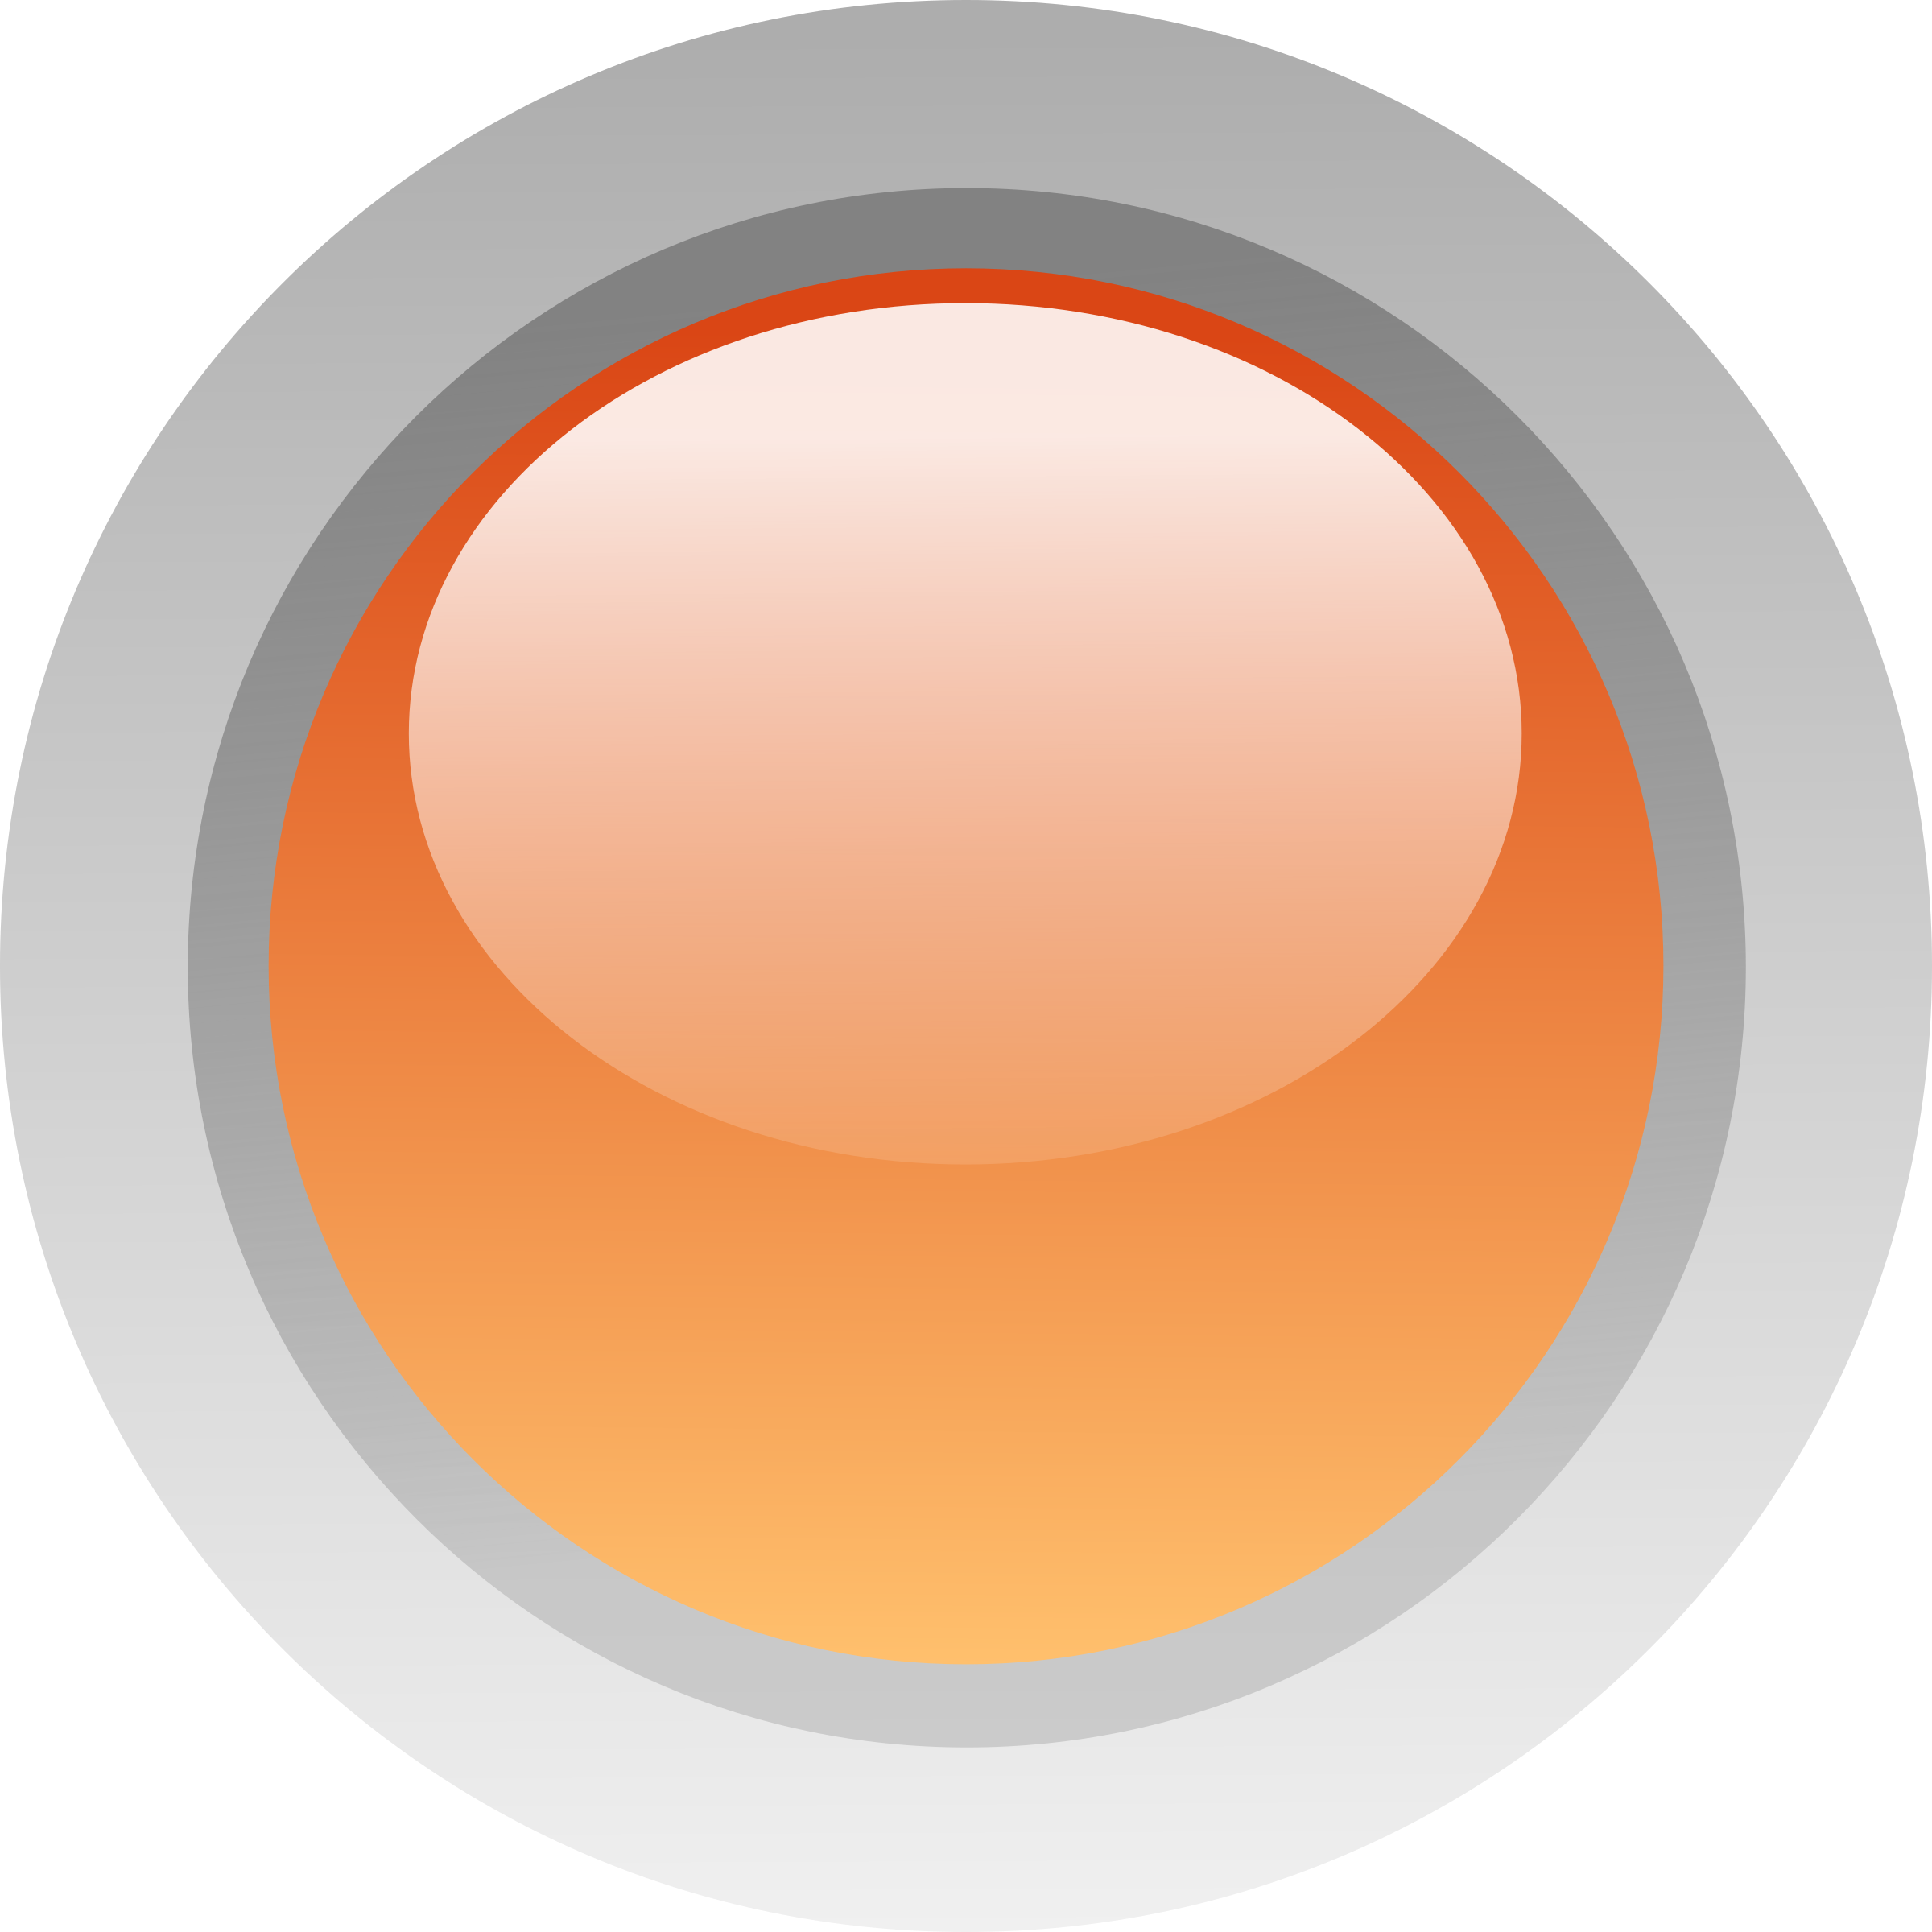 Led orange. Circle clipart peach